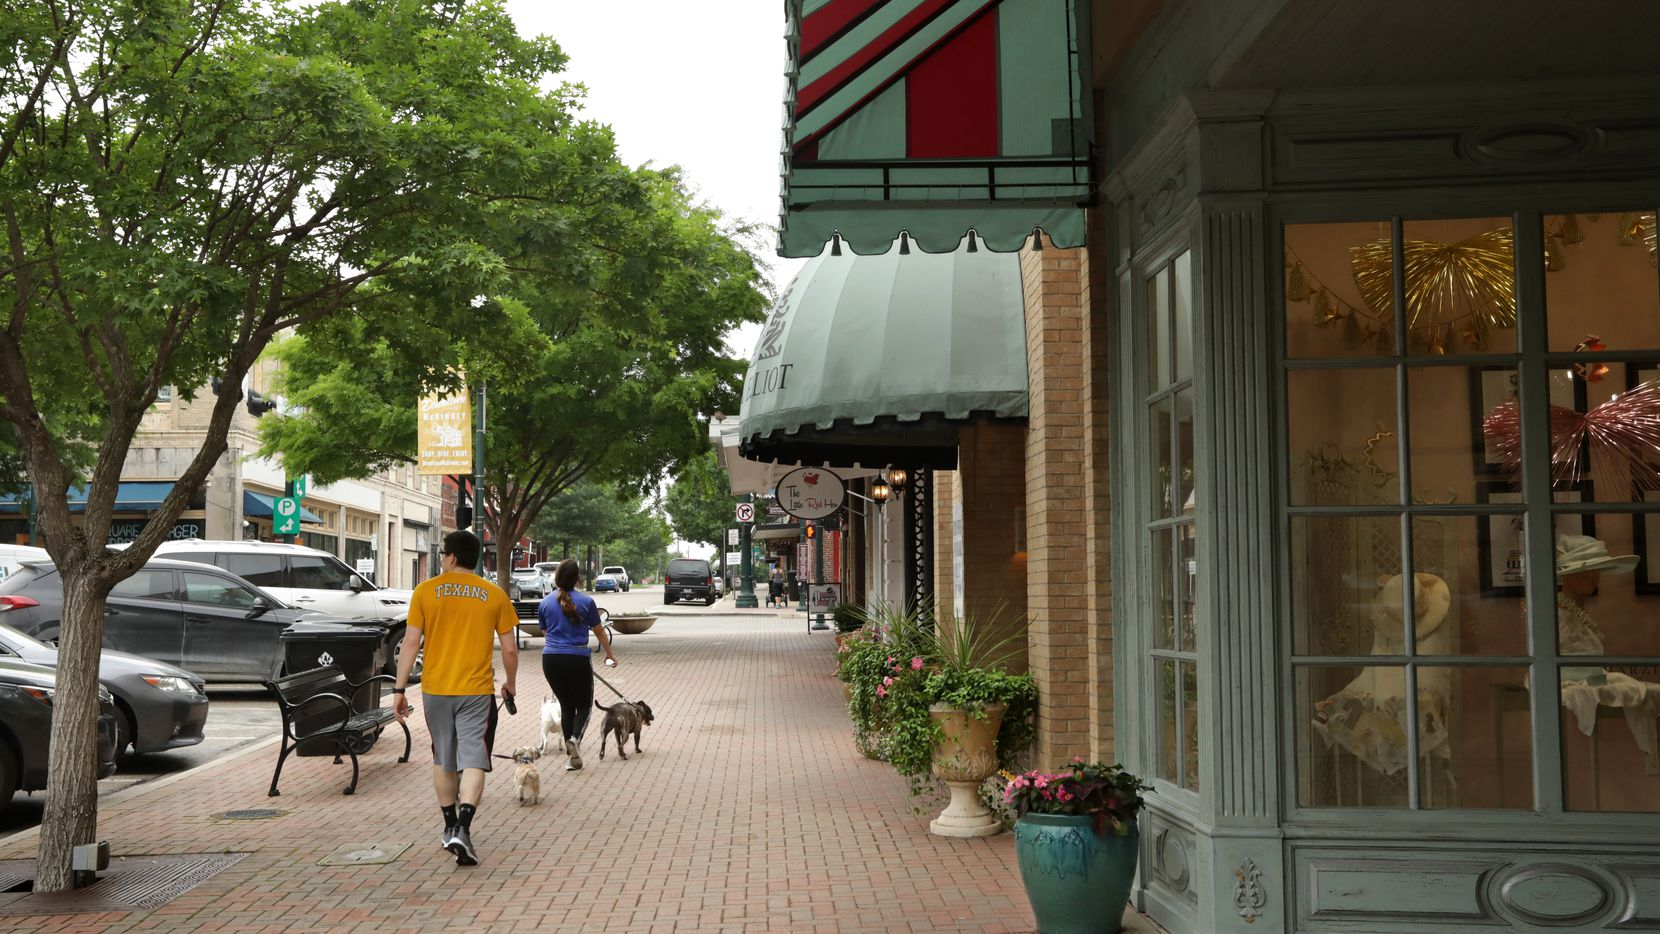 Though some businesses are offering curbside pickup and delivery, many town square shops remain closed in McKinney. An in-car rally planned for Friday hopes to show support for the the businesses in the city's historic downtown.